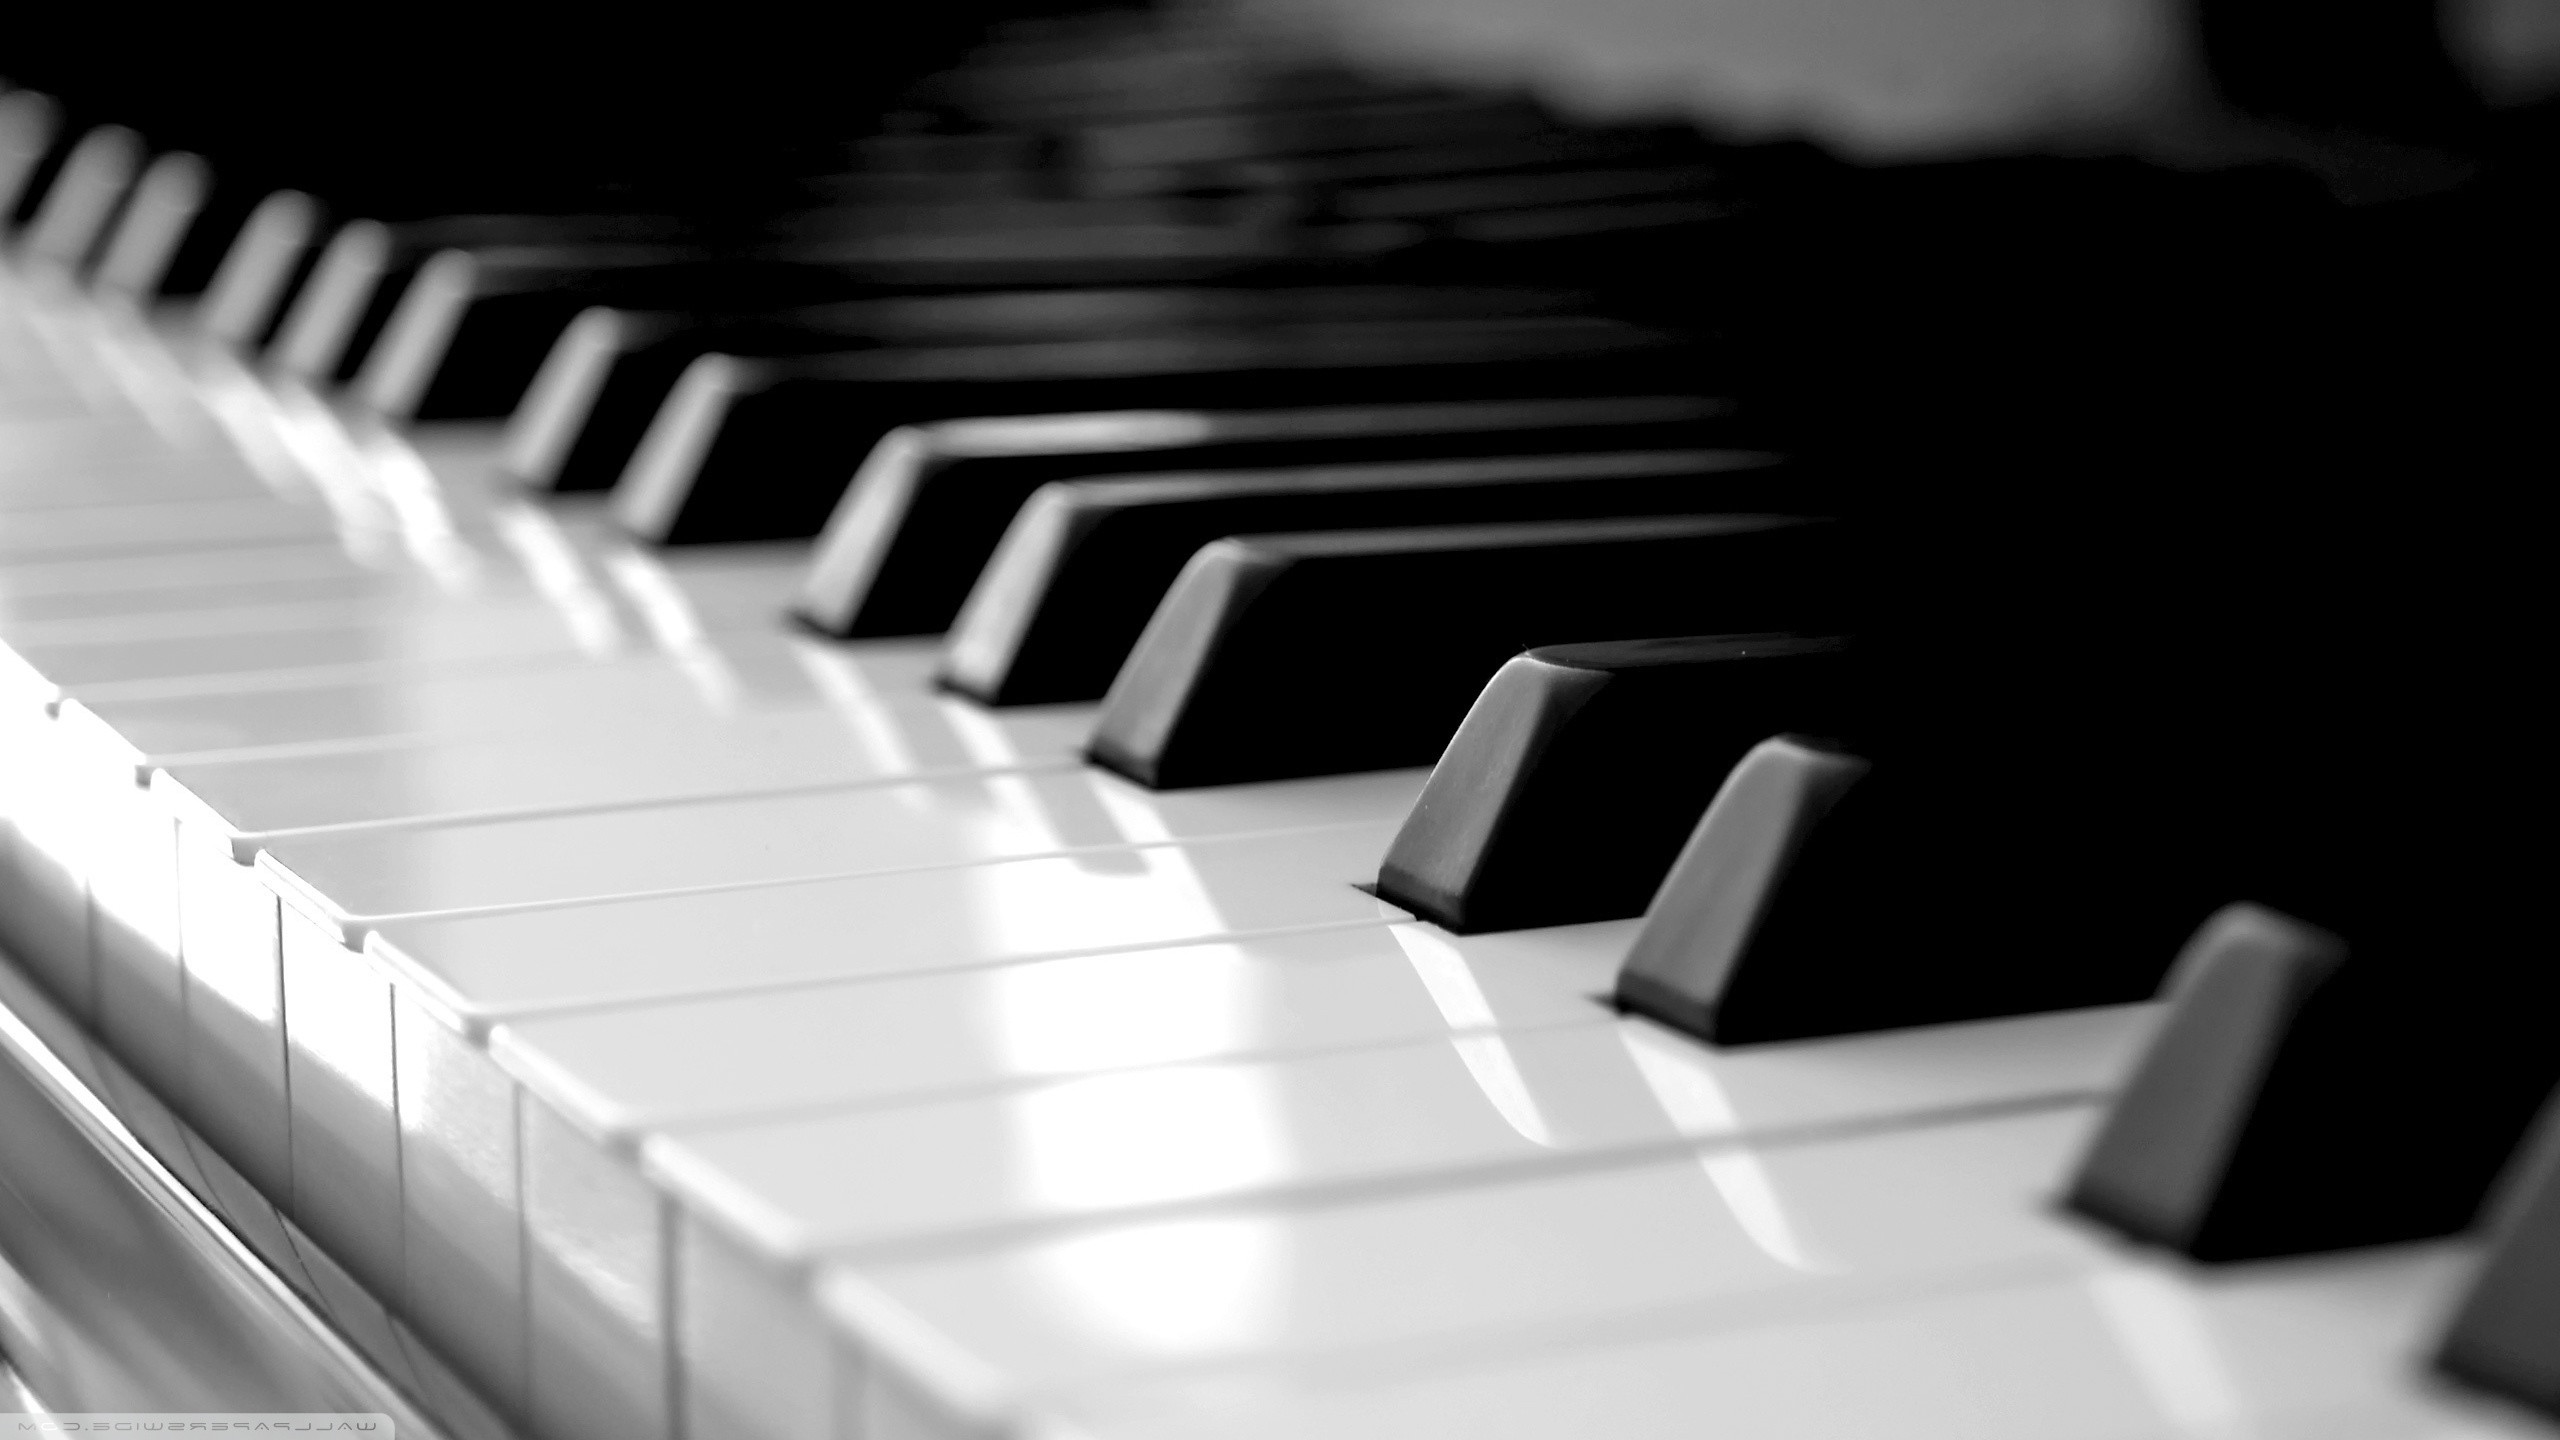 Windows 8 Piano Keyboard Wallpaper (83+ images)